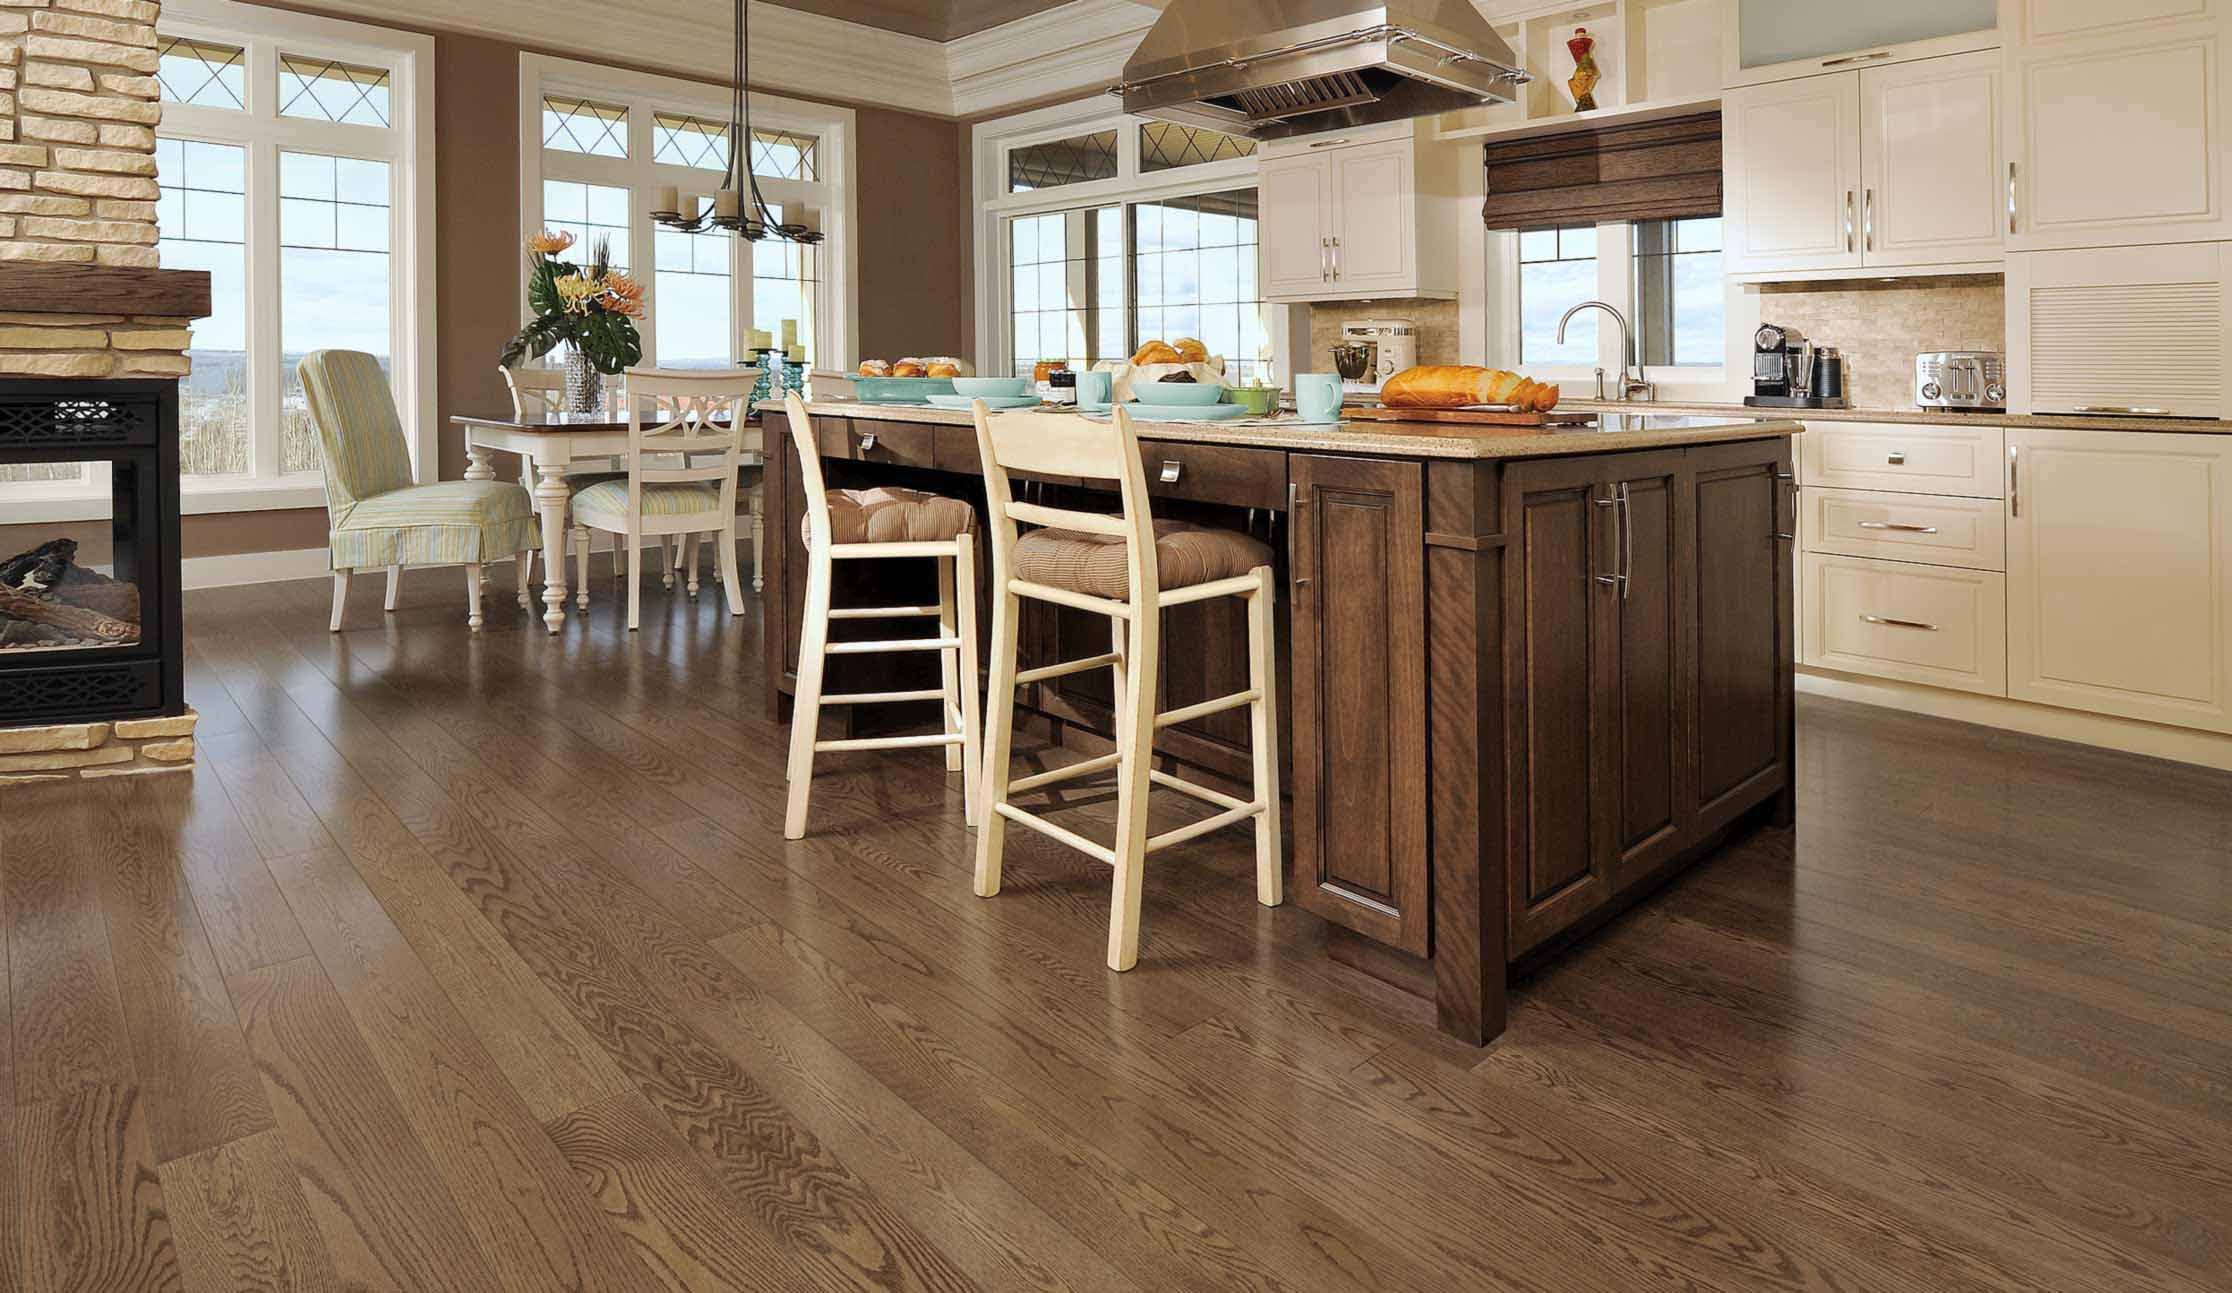 Admiration Red Oak Savanna Mirage Hardwood Floors